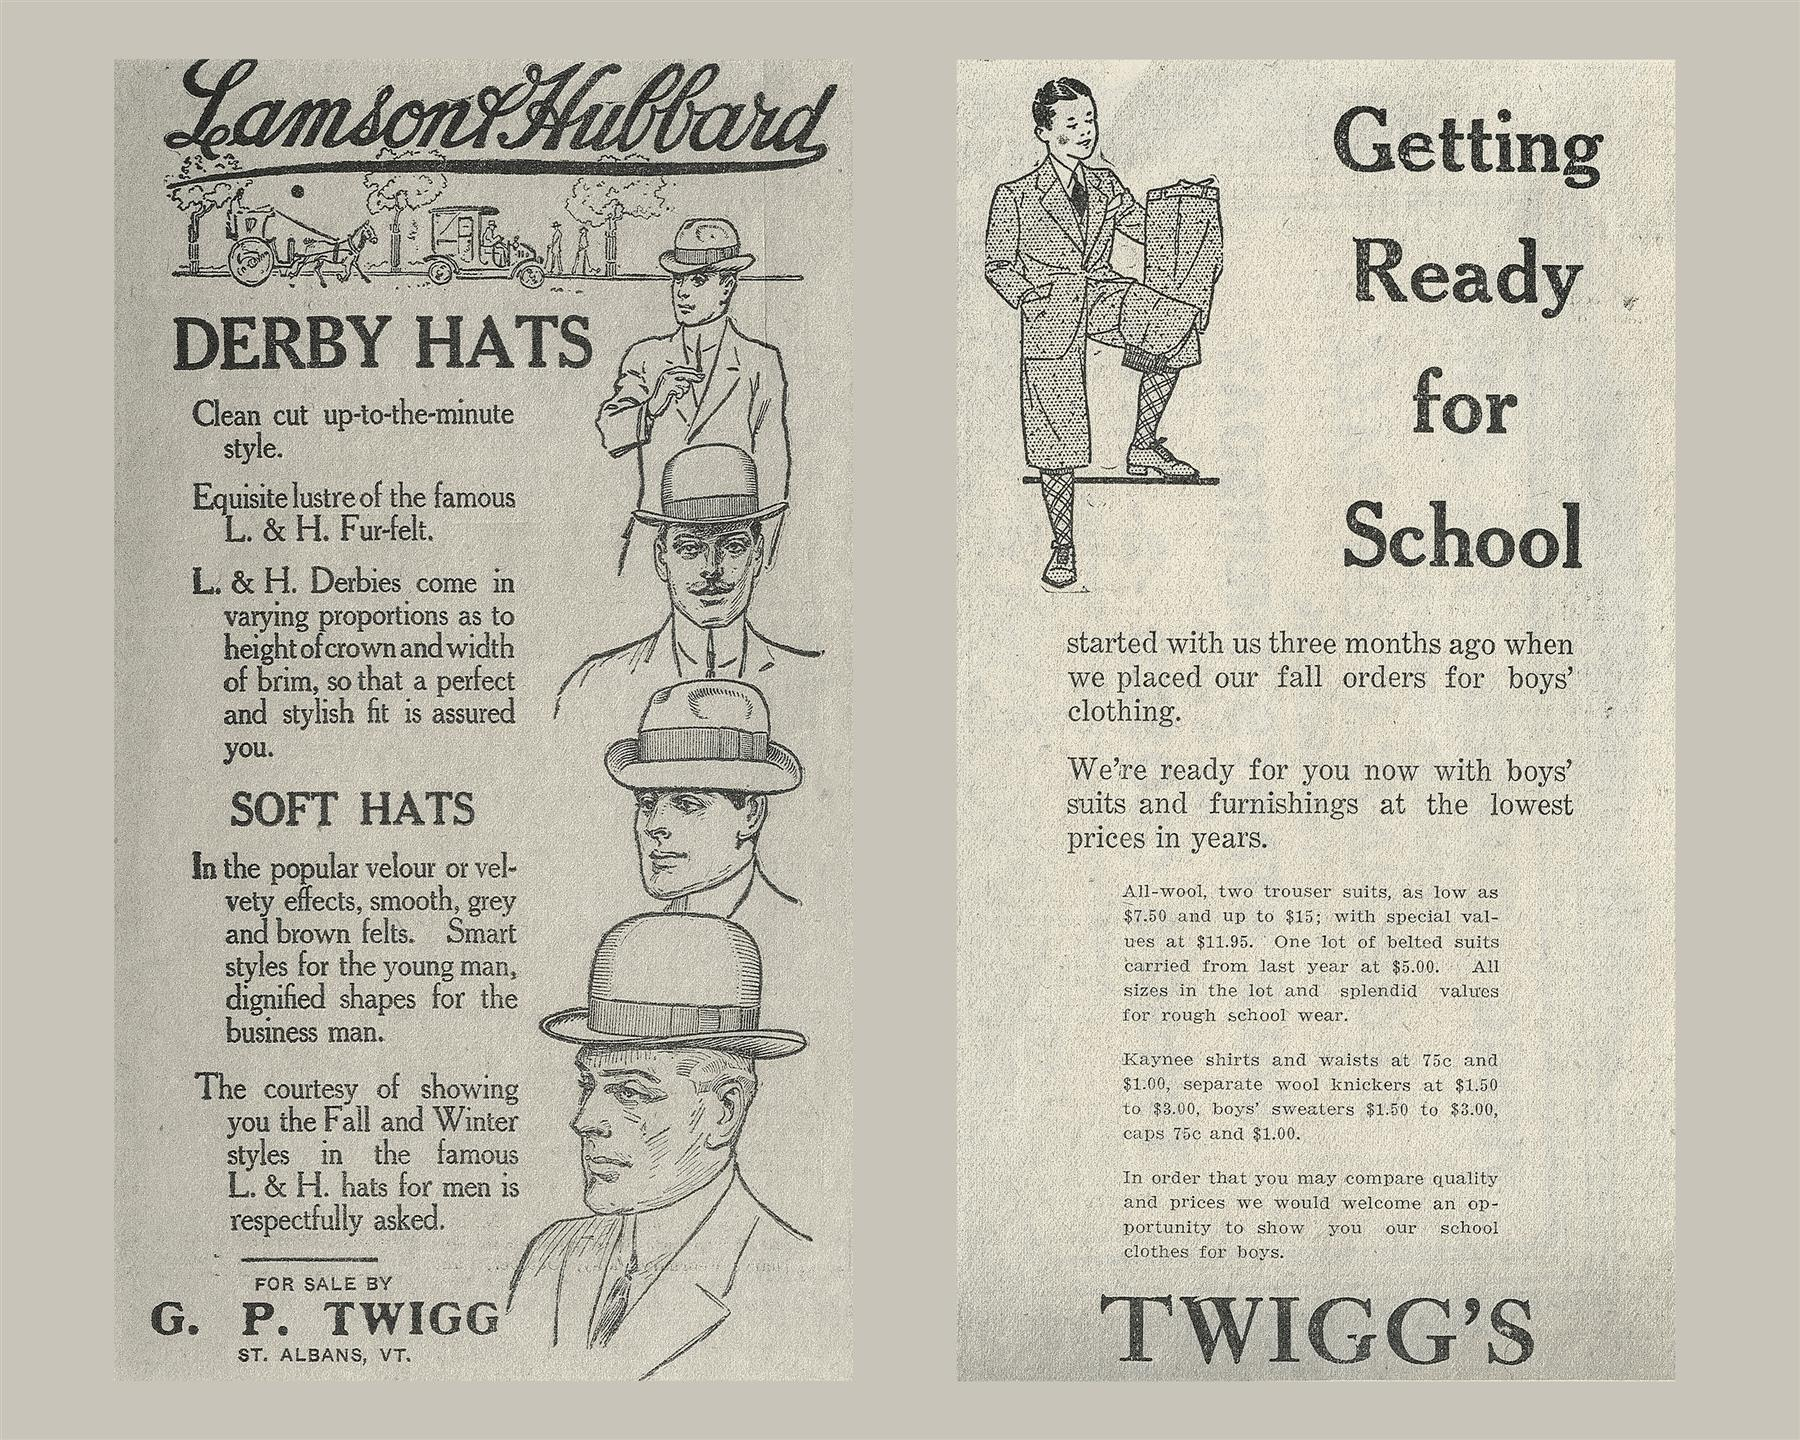 an old twiggs advertisement, showcasing derby hats and back-to-school clothing